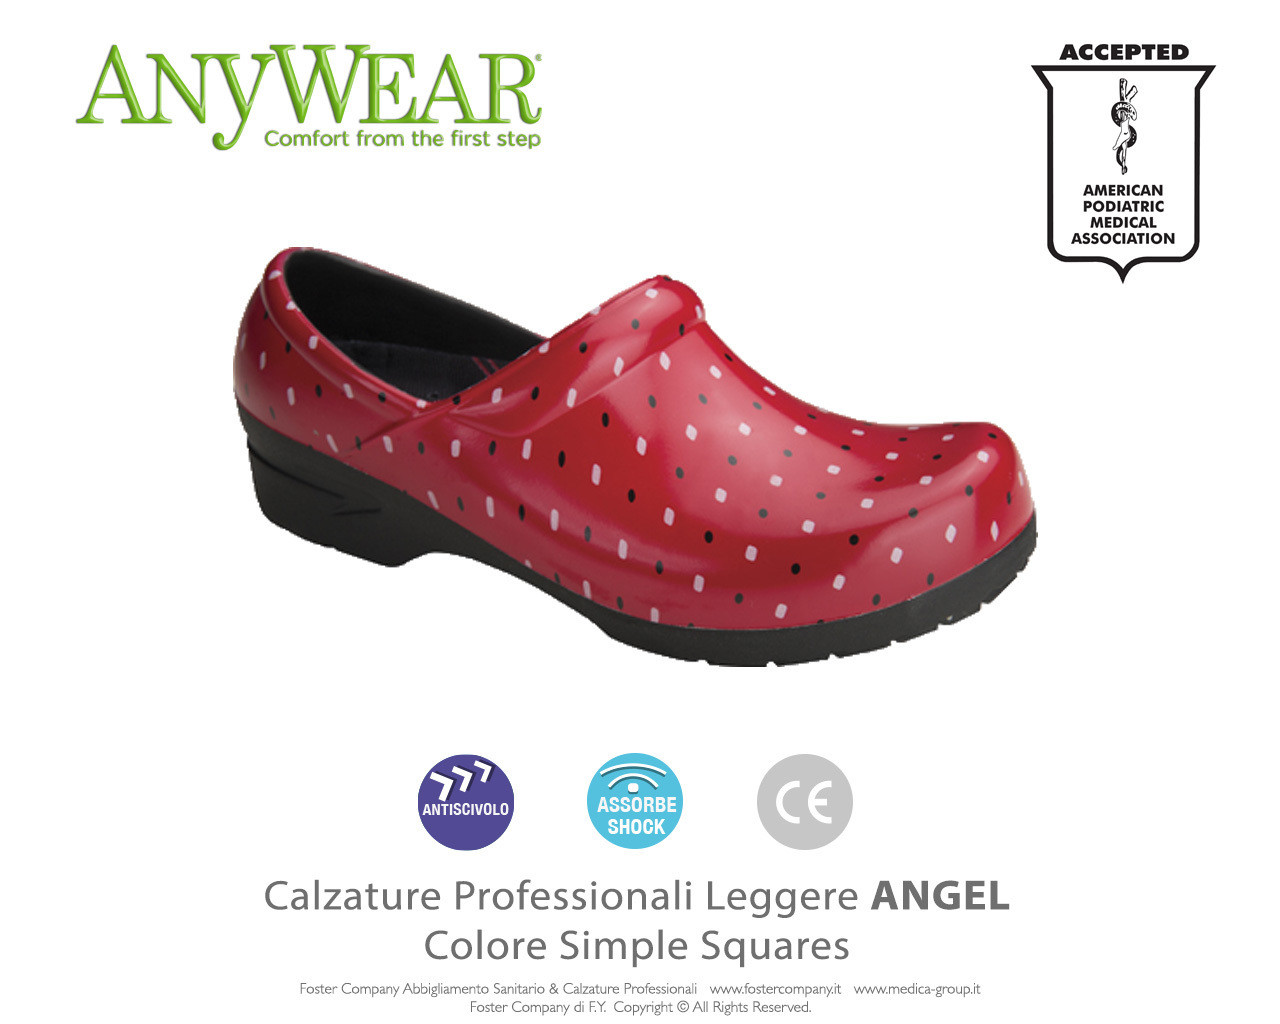 Calzature Professionali Anywear ANGEL Colore Simple Squares